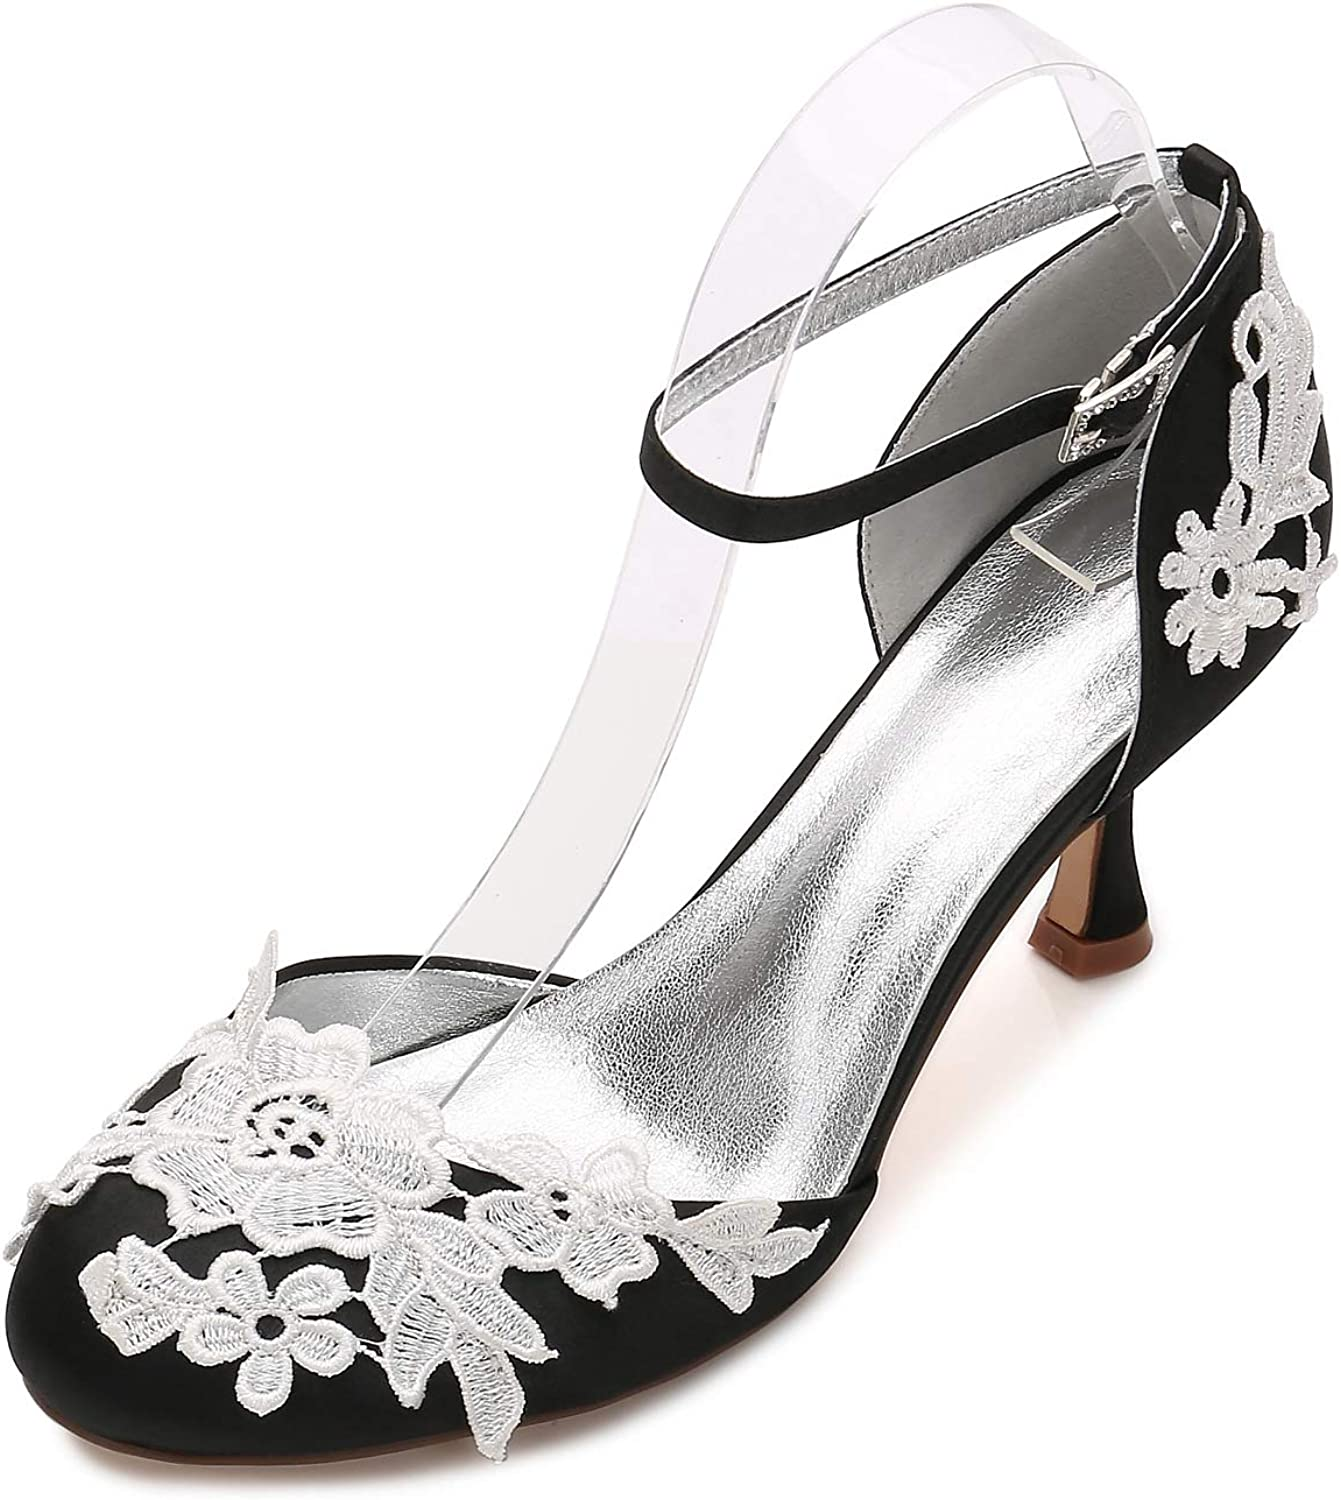 LLBubble Women High Heels Satin Appliques Wedding Bridal shoes Round Toe Ankle Strap Buckle Formal Party Dress Pumps 17061-7